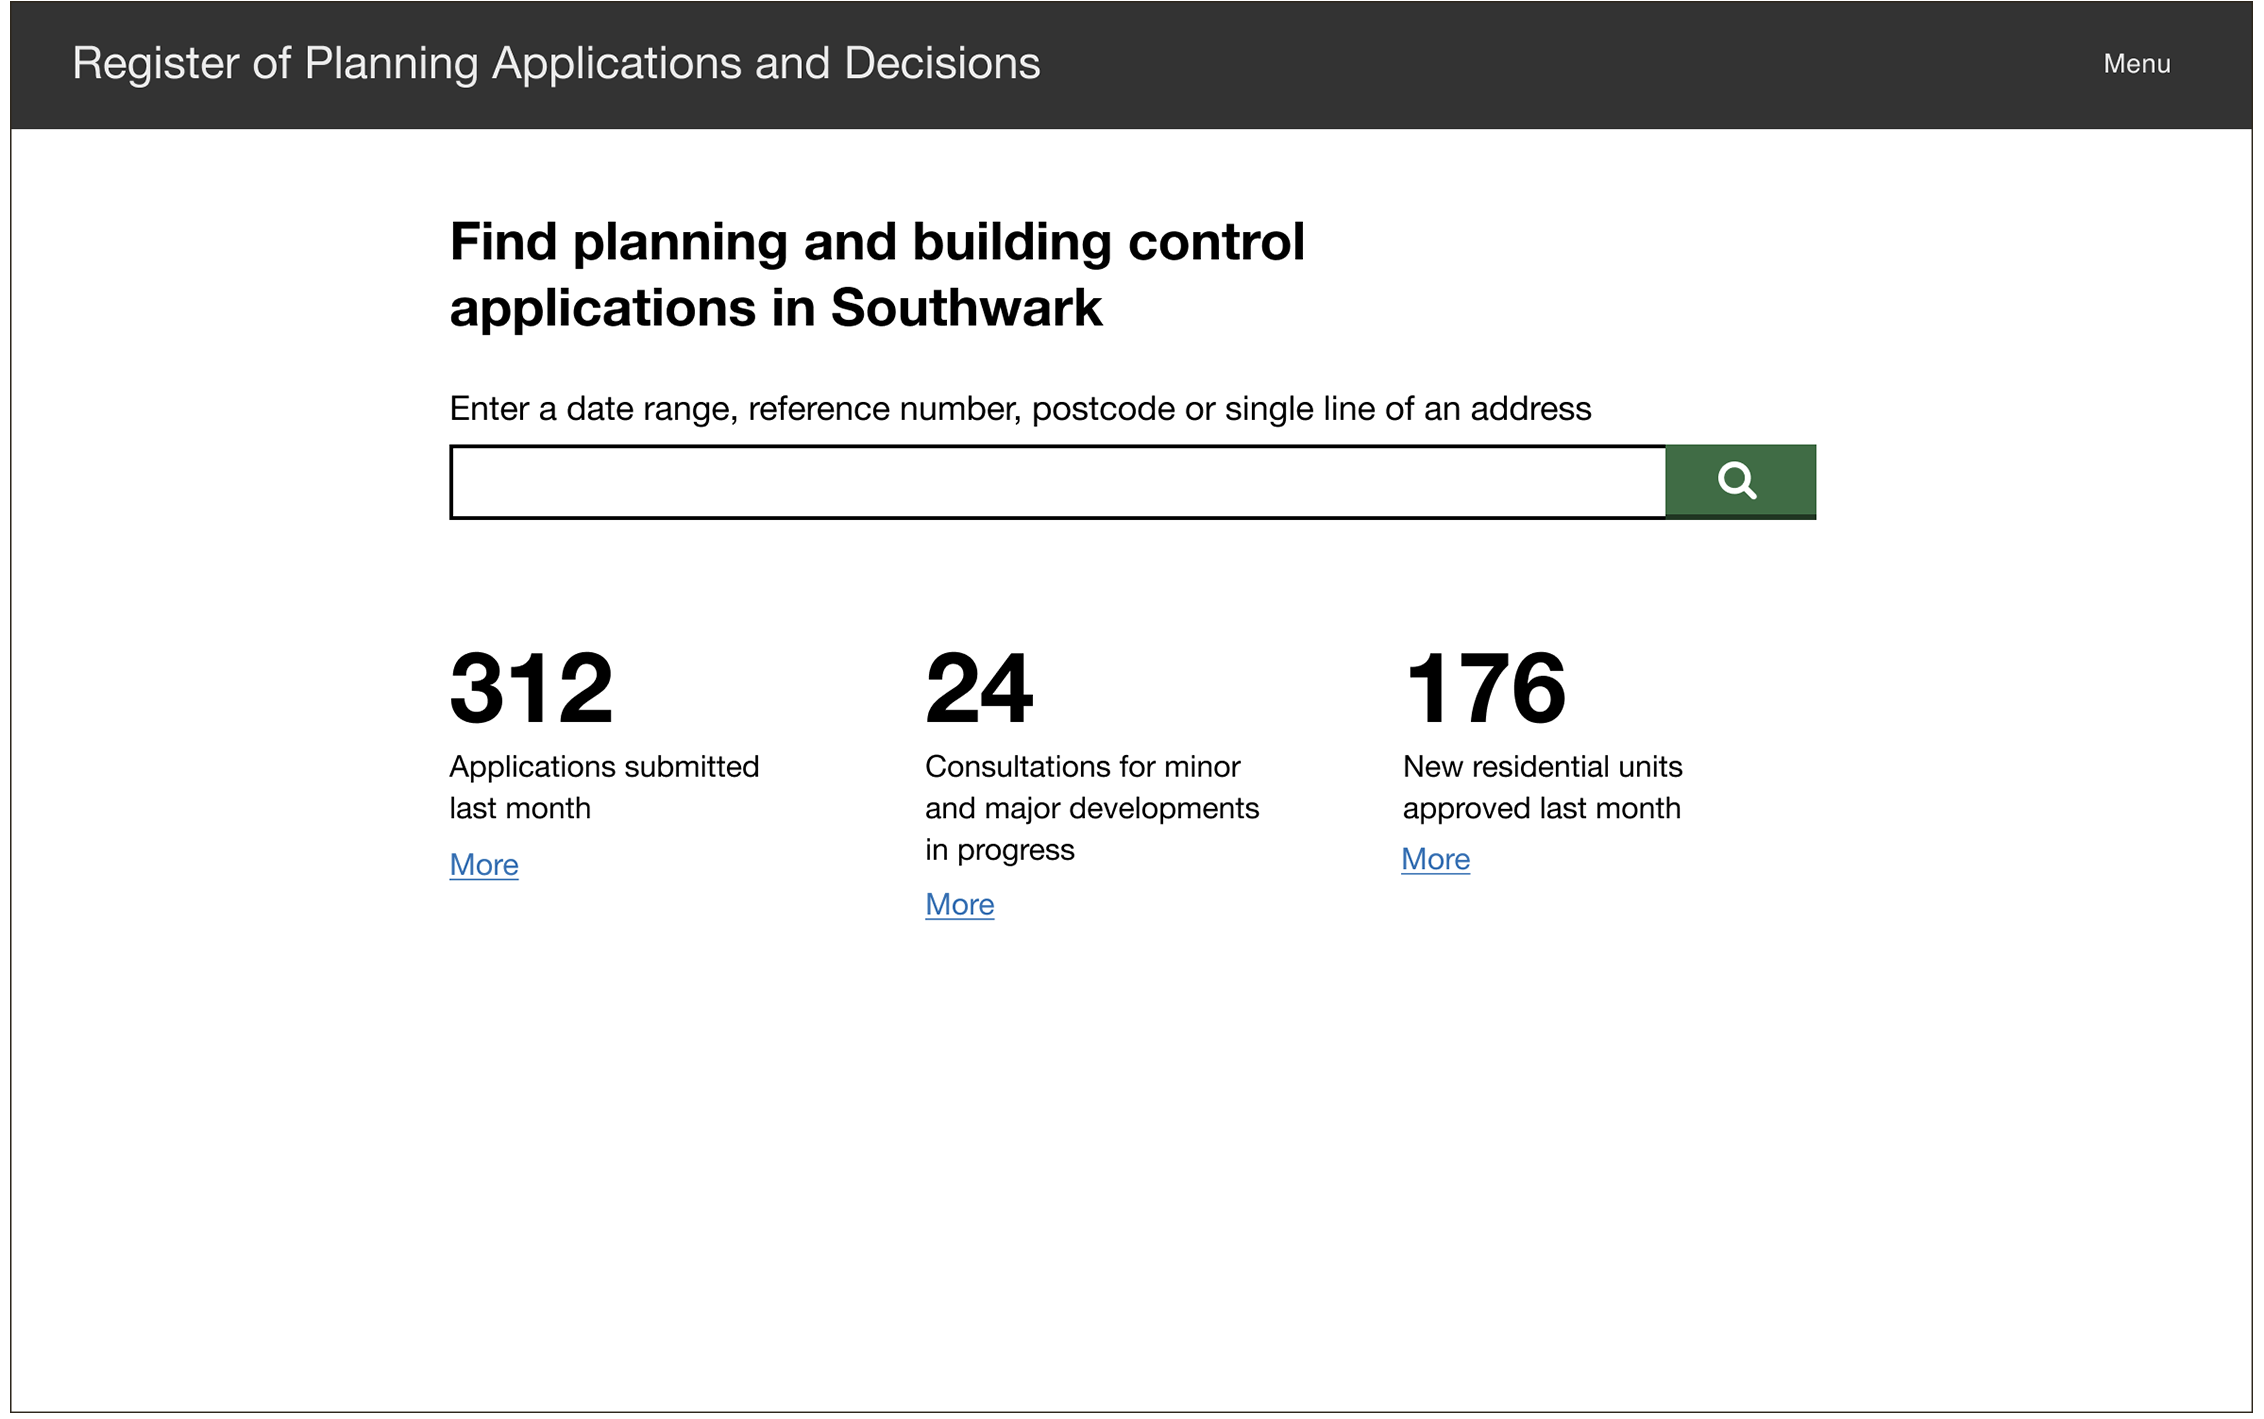 Screenshot from prototype showing a search page to search planning applications in the UK